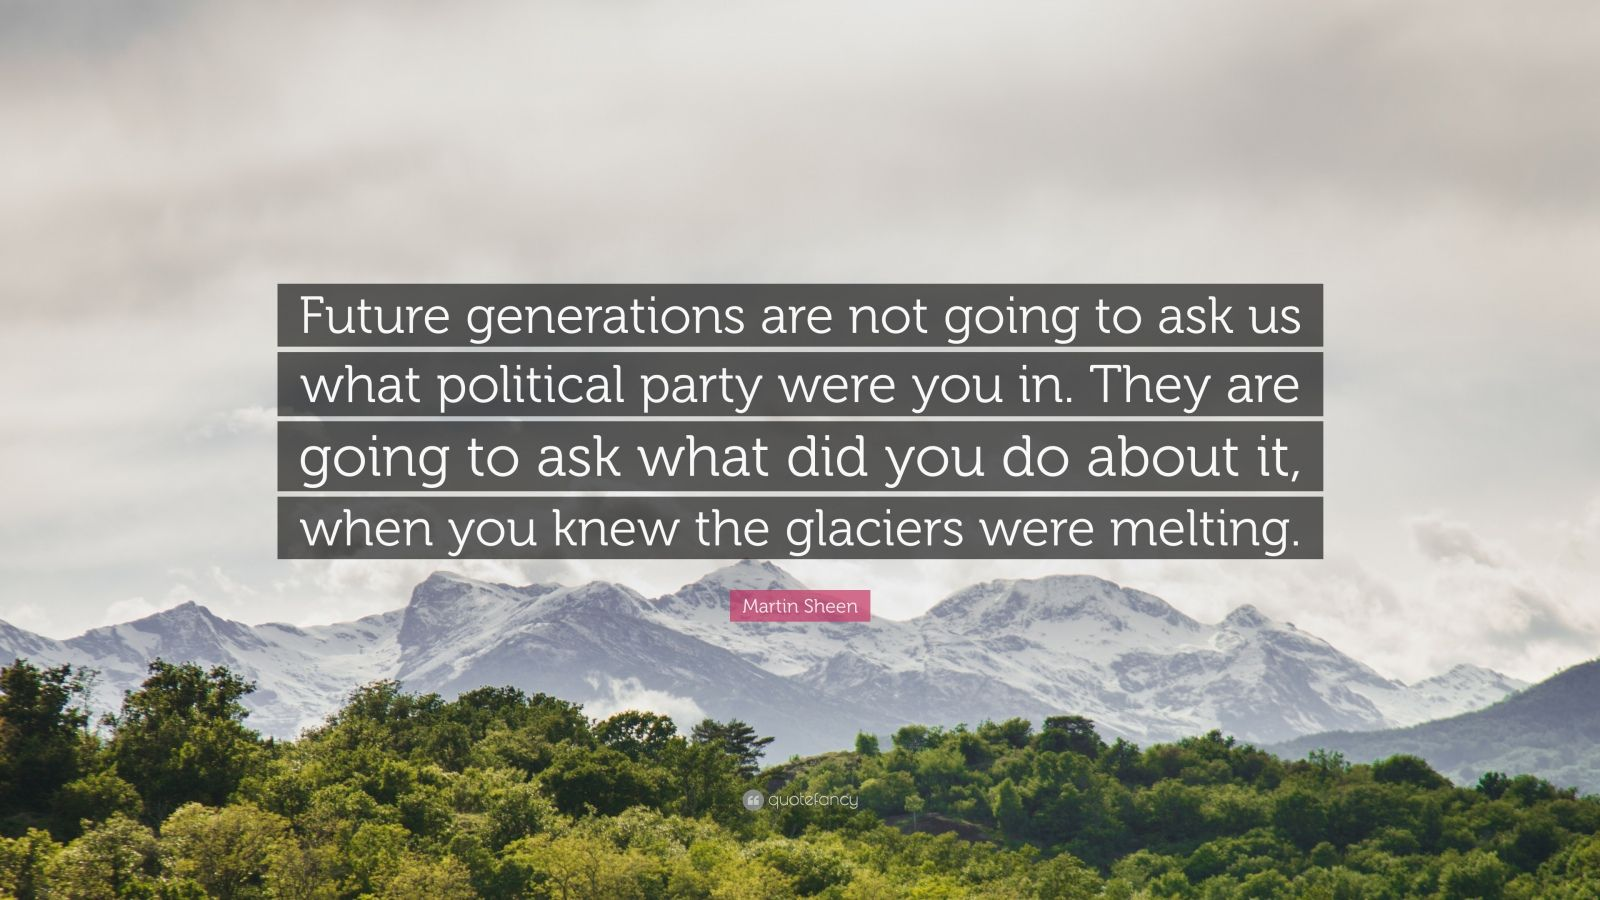 """Martin Sheen Quote: """"Future generations are not going to ask us what political party were you in. They are going to ask what did you do about it, when you knew the glaciers were melting."""""""